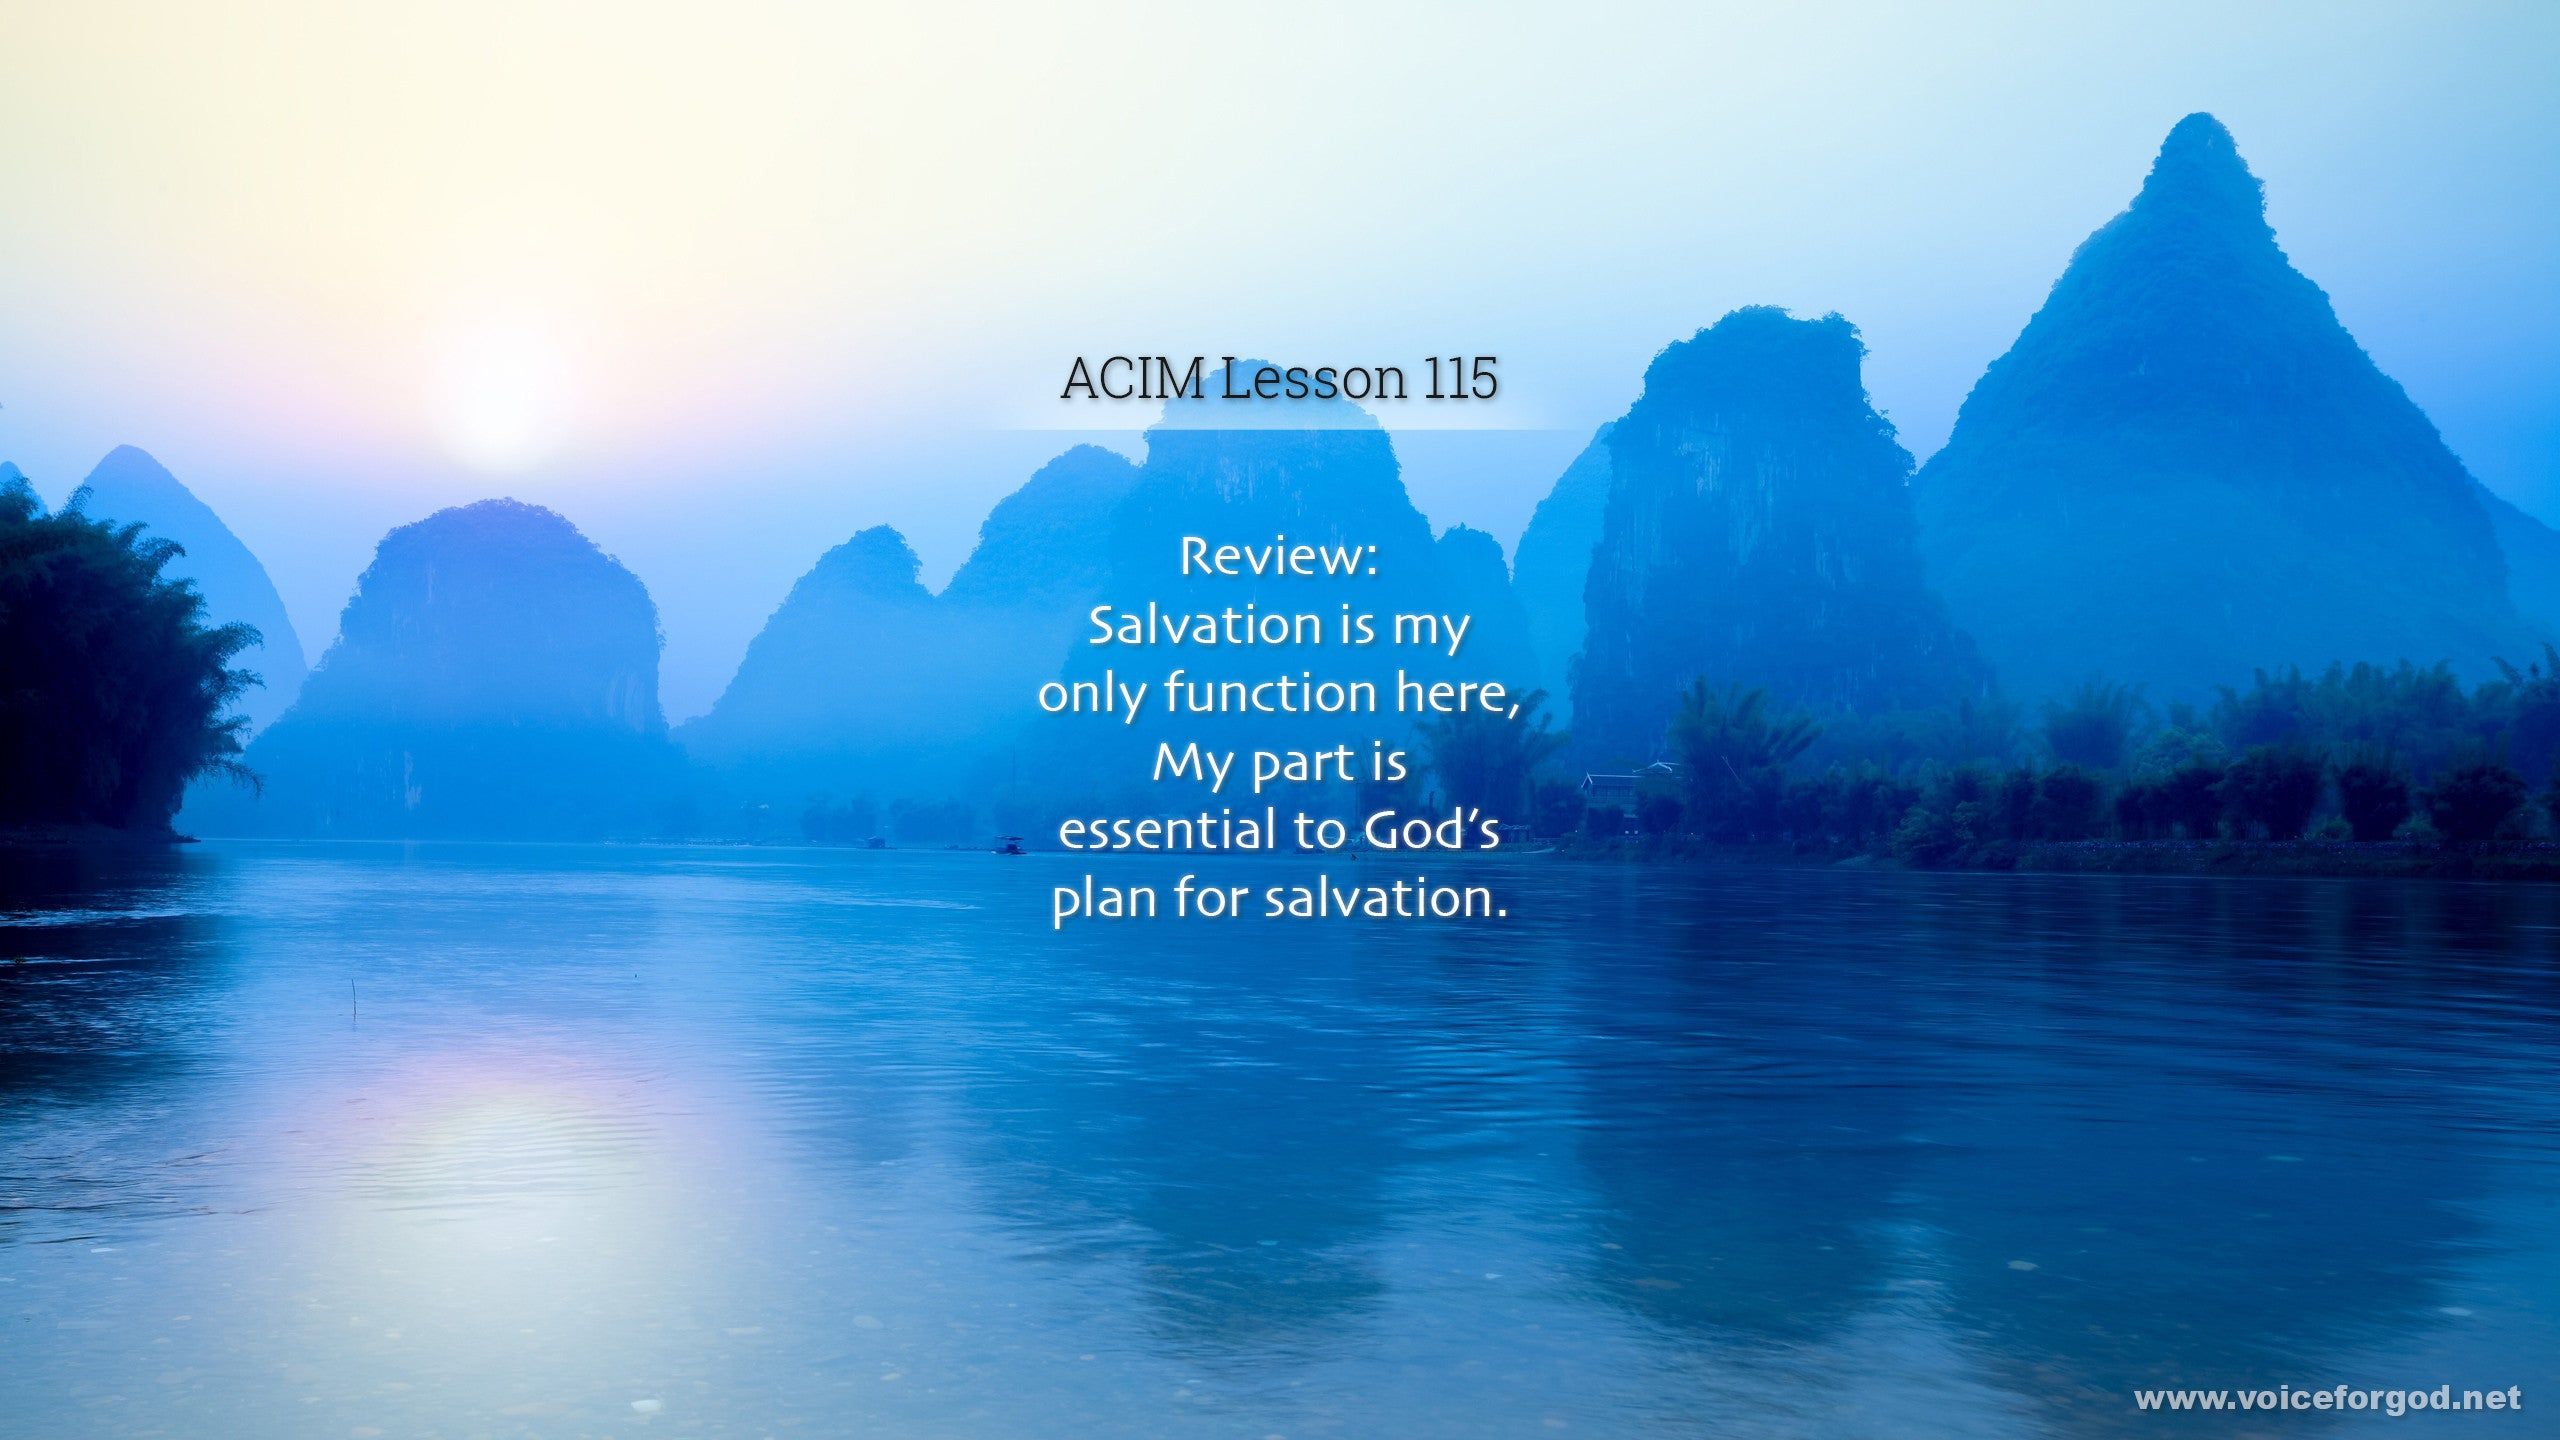 ACIM Lesson 115 - A Course in Miracles Workbook Lesson 115